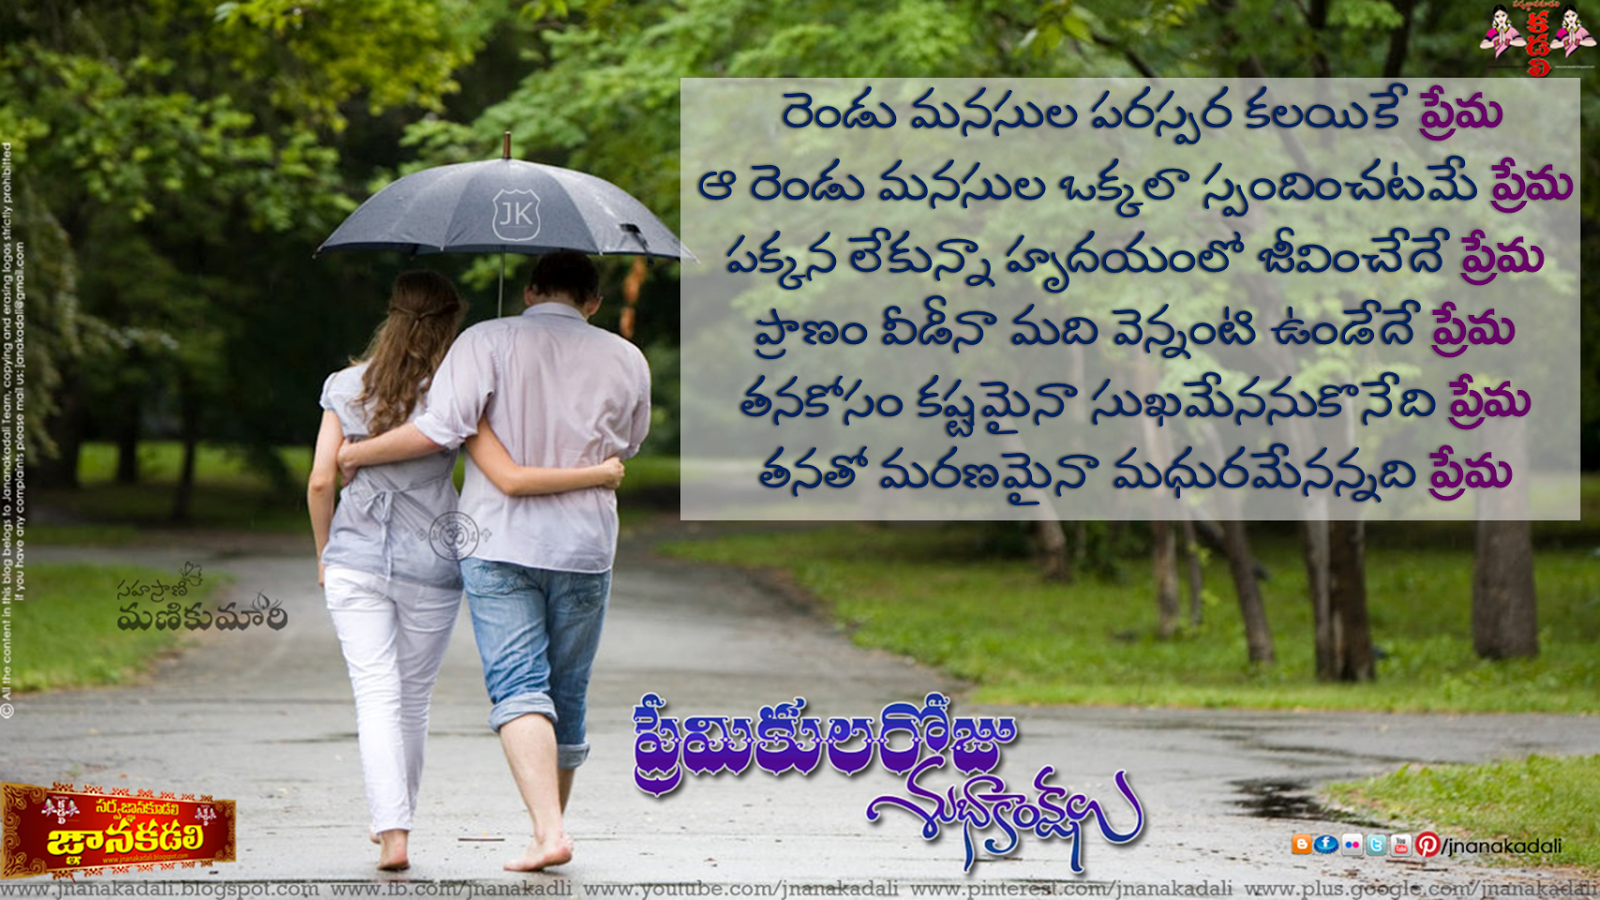 Beautiful Telugu Love & Romantic Quotes with Images, Telugu Prema Kavithalu, Telugu Love Quotations, Telugu HQ Love Quotes Images, Nenu ninnu premisthunnanu , Telugu I love you wallpapers, telugu love images, Telugu love imagesHere is a Feb 14 Telugu Valentine's Day Quotes and Greetings with Nice Love Images. Telugu Beautiful Love Quotes for Valentine's Day. Nice Telugu Happy Valentine's Day Greetings Online. Free Beautiful Online Telugu Premikula Roju Online Greetings and Quotations Pictures.